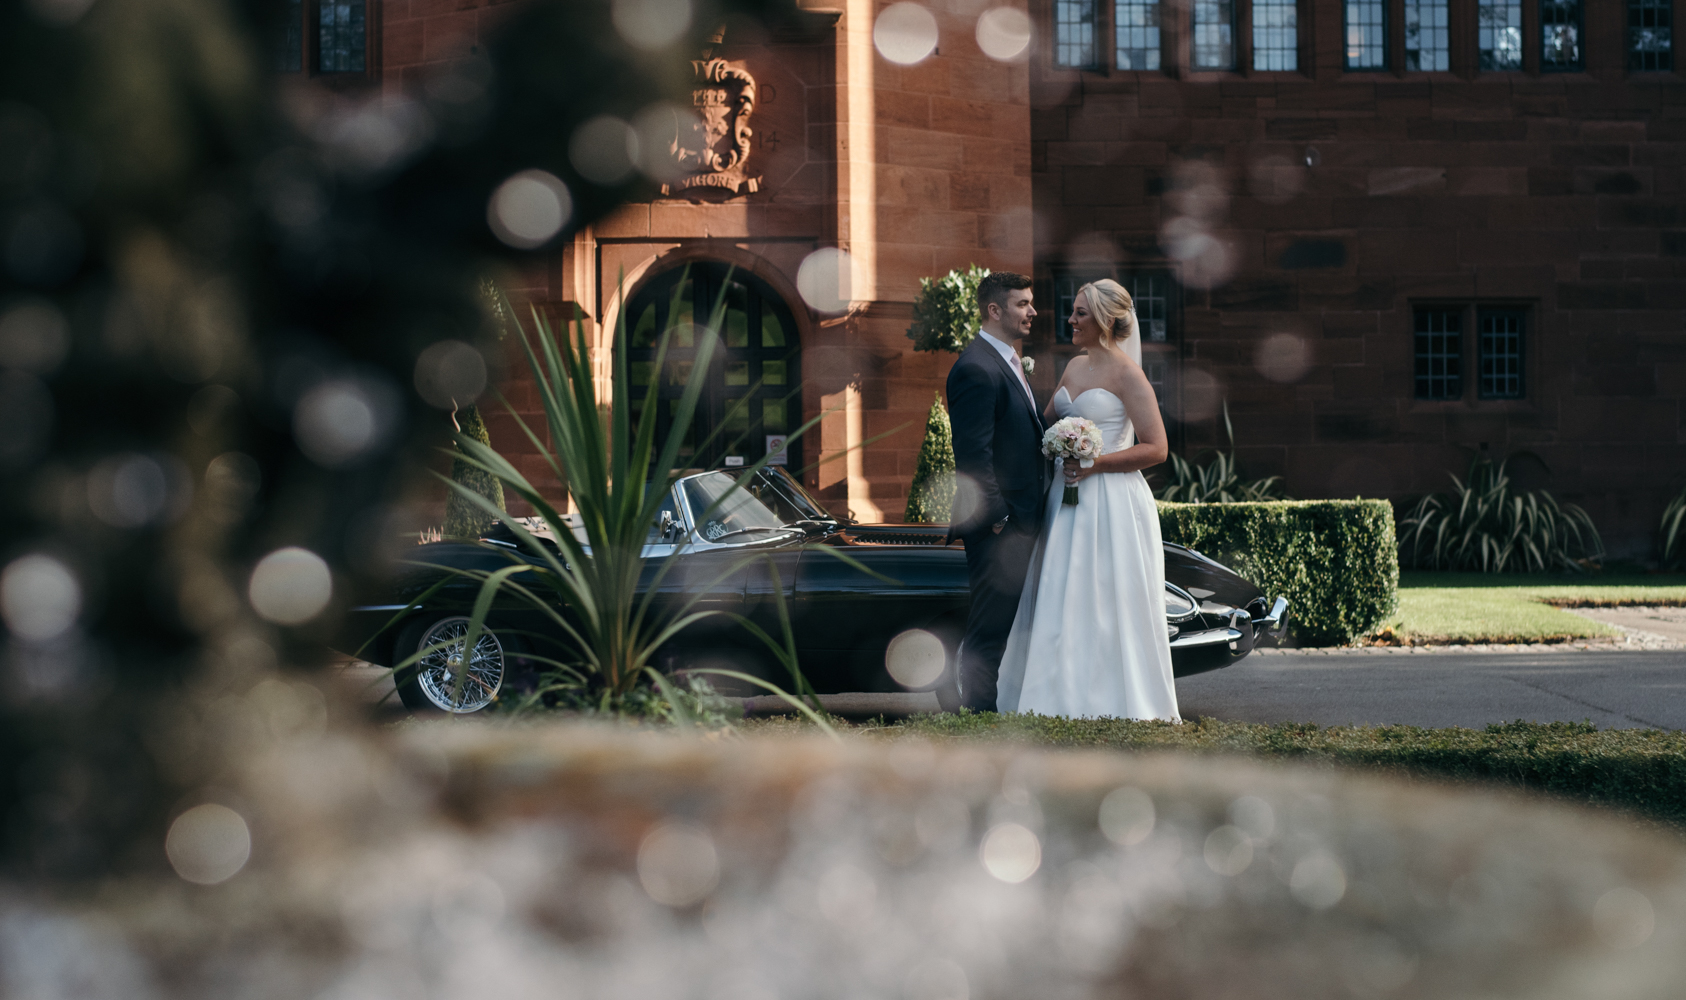 The bride and groom outside Abbey House Hotel standing by the classic e-type jaguar